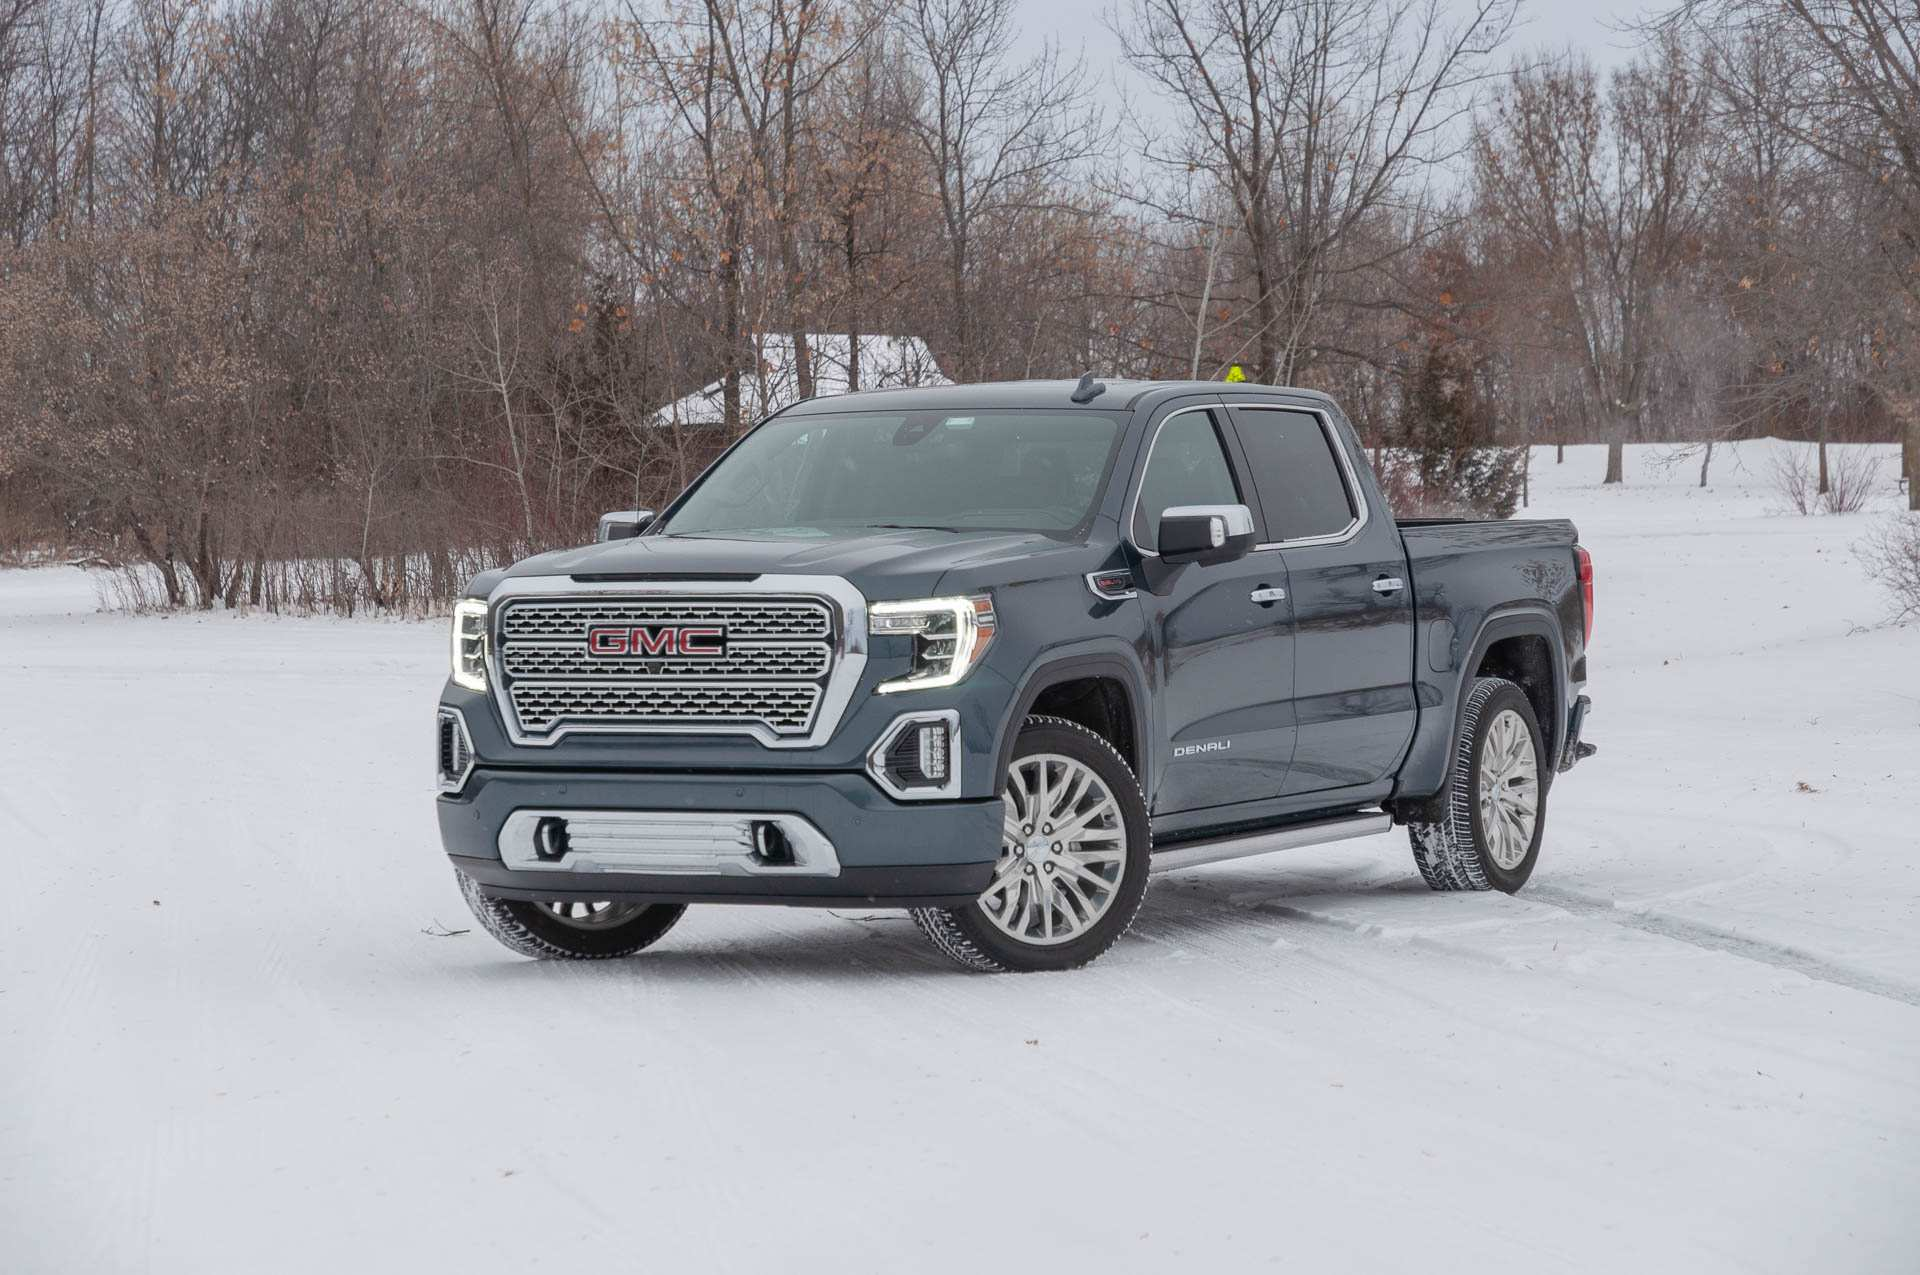 61 The 2019 Gmc Sierra Denali 1500 Hd Prices